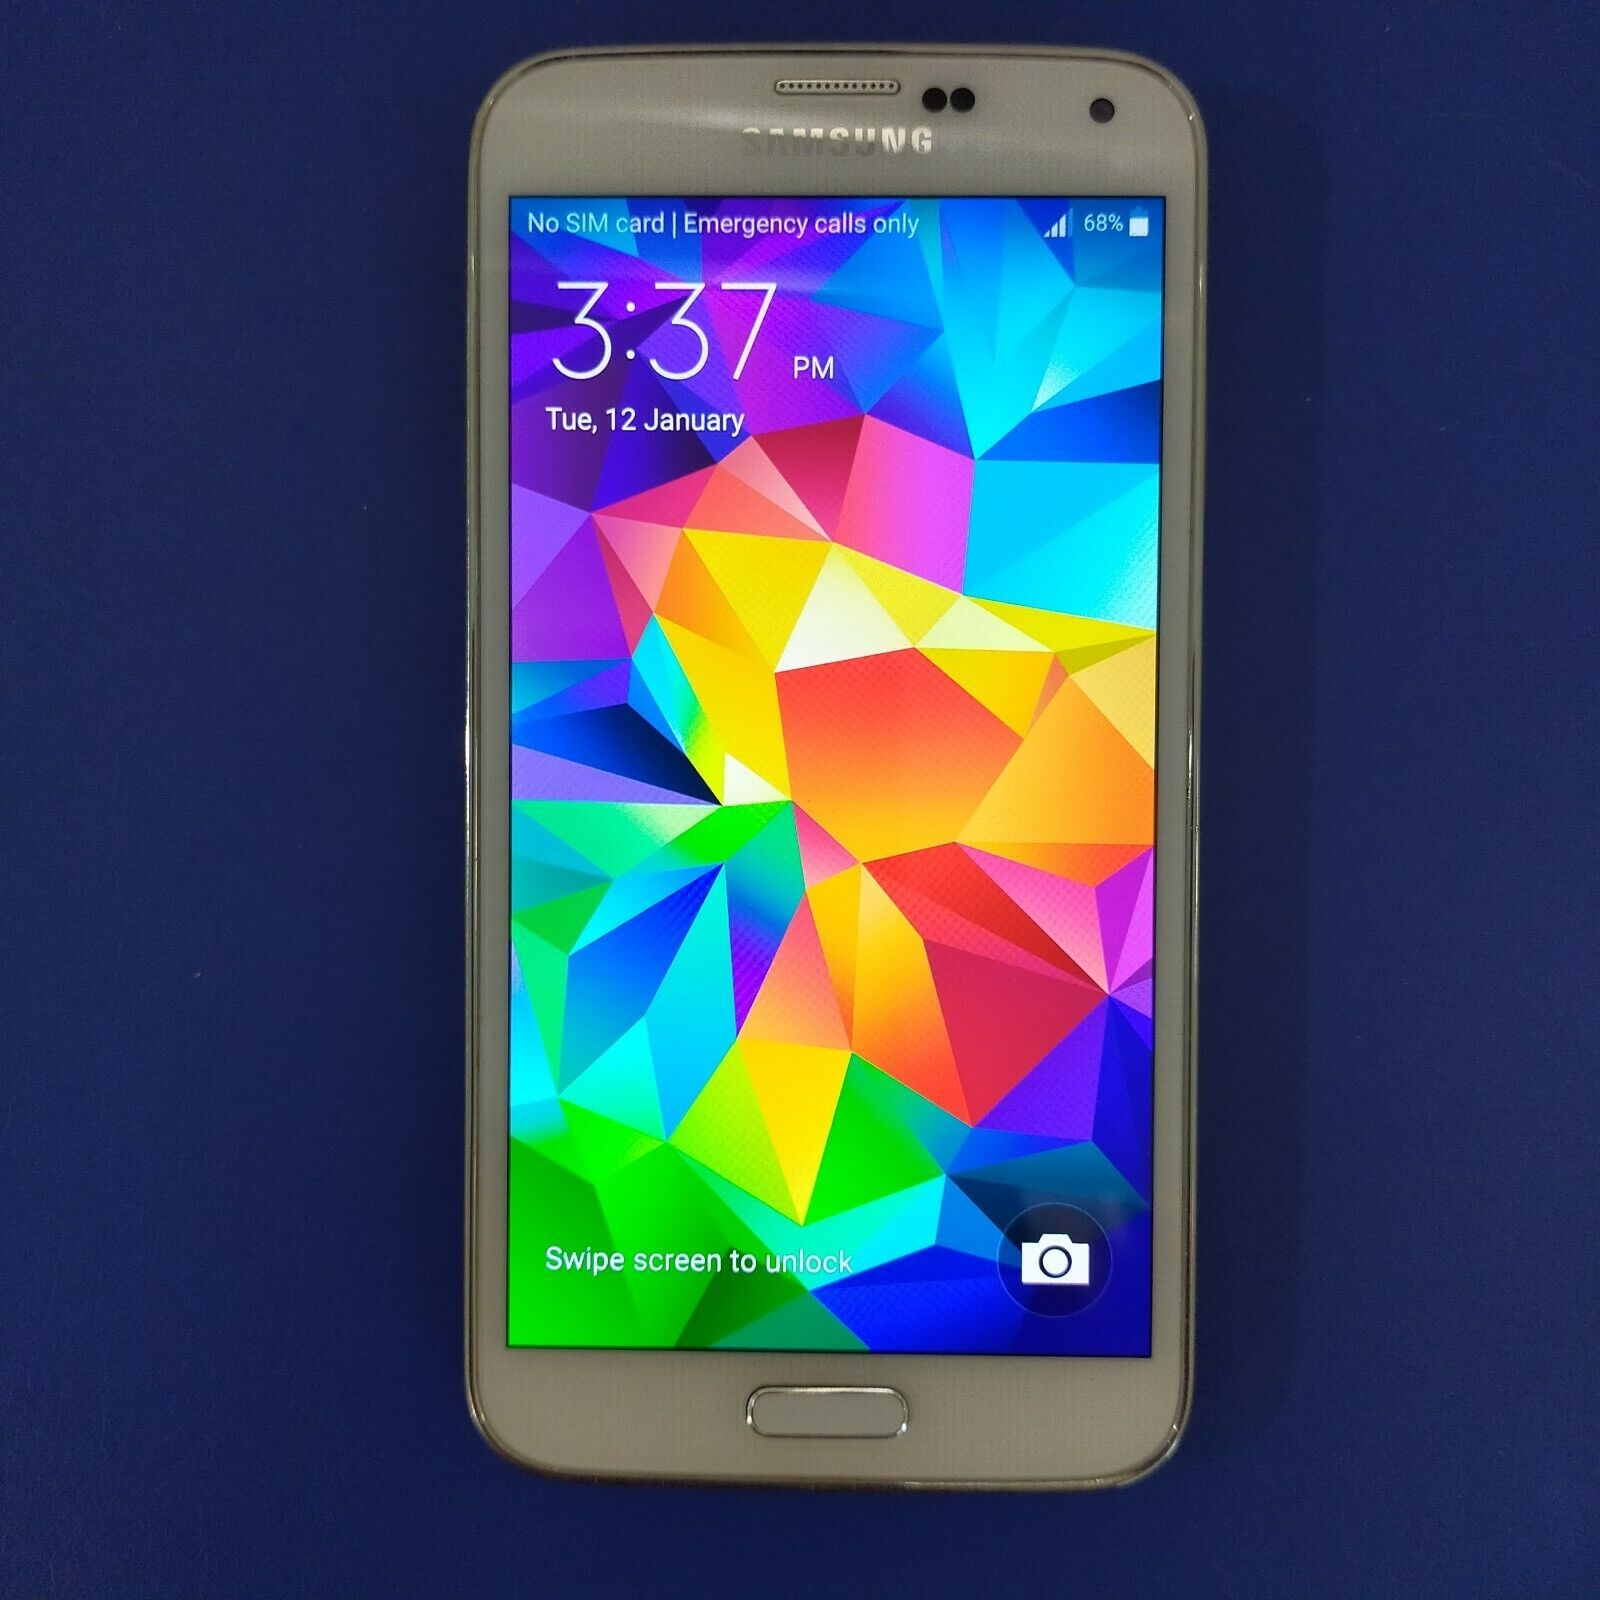 Android Phone - Samsung Galaxy S5 SM-G900I - Shimmery White 4G Smartphone